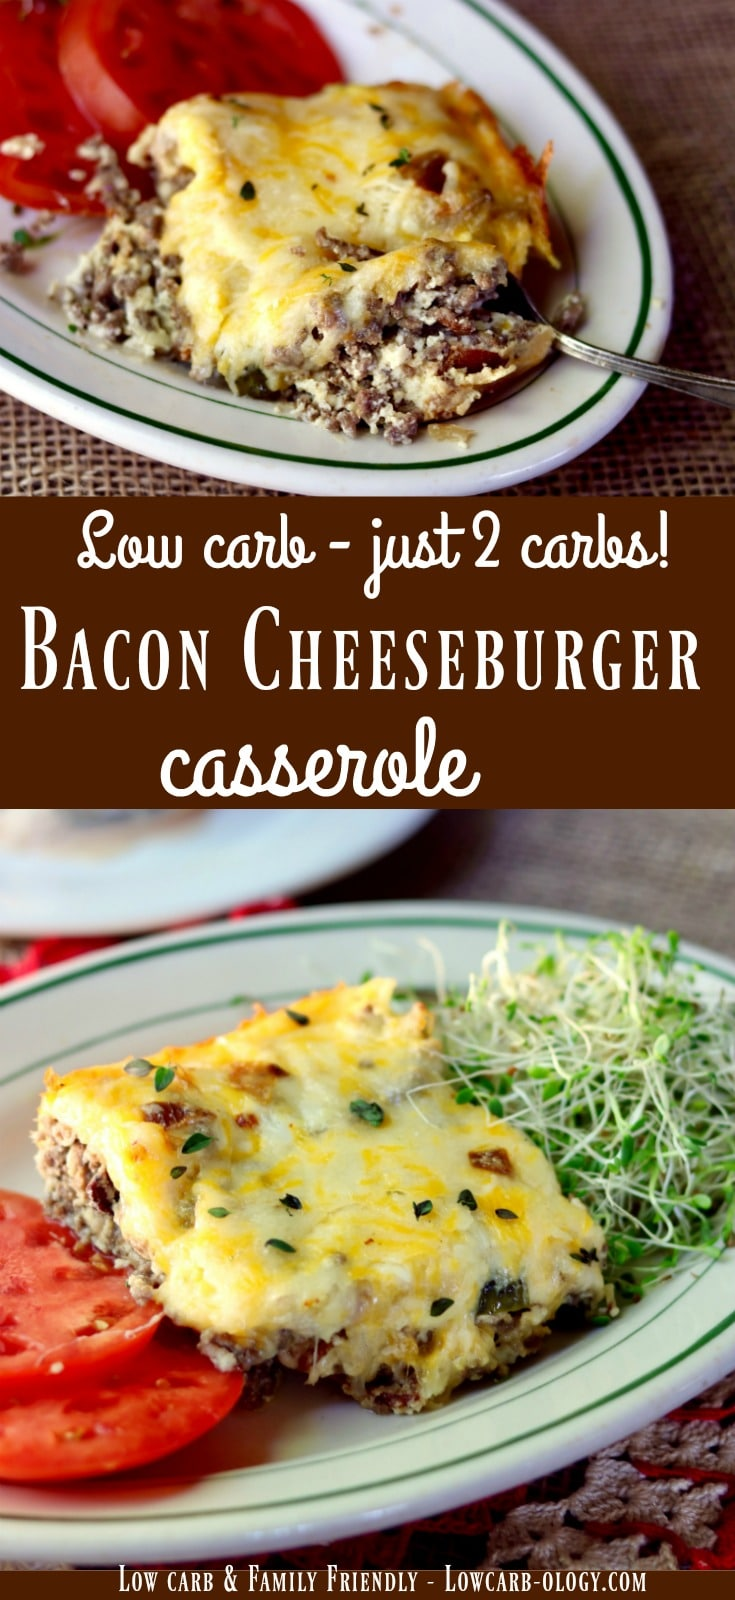 Easy, low carb weeknight supper! Bacon cheeseburger casserole recipe has just 2 carbs and is family friendly! From Lowcarb-ology.com